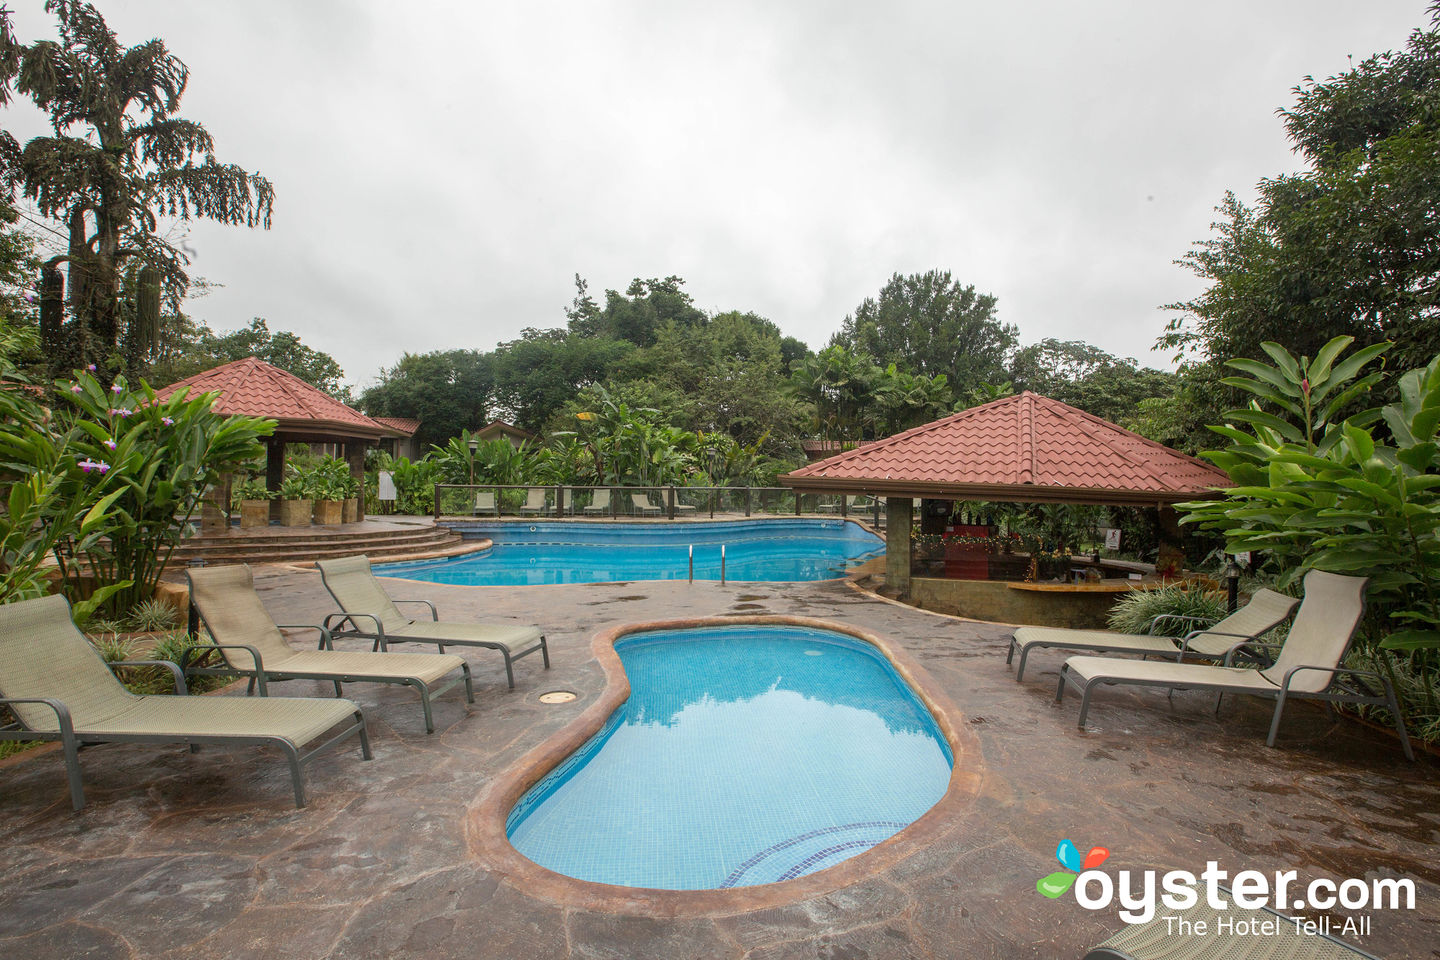 The Best Hotels With Hot Springs in La Fortuna, Costa Rica (updated